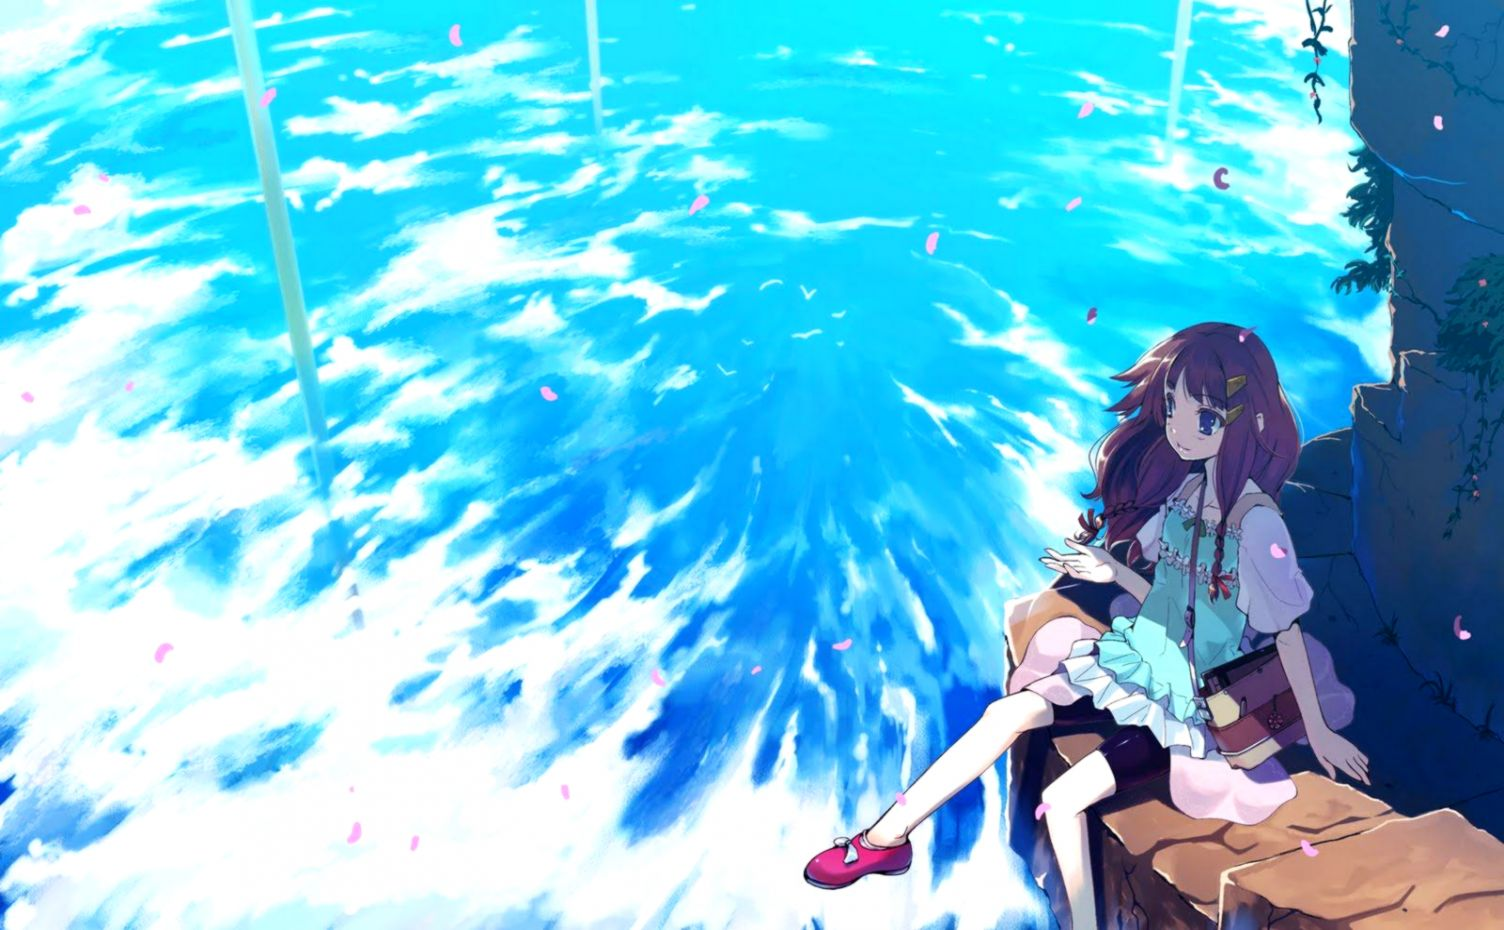 Beautiful anime wallpaper free best image background view original size voltagebd Images